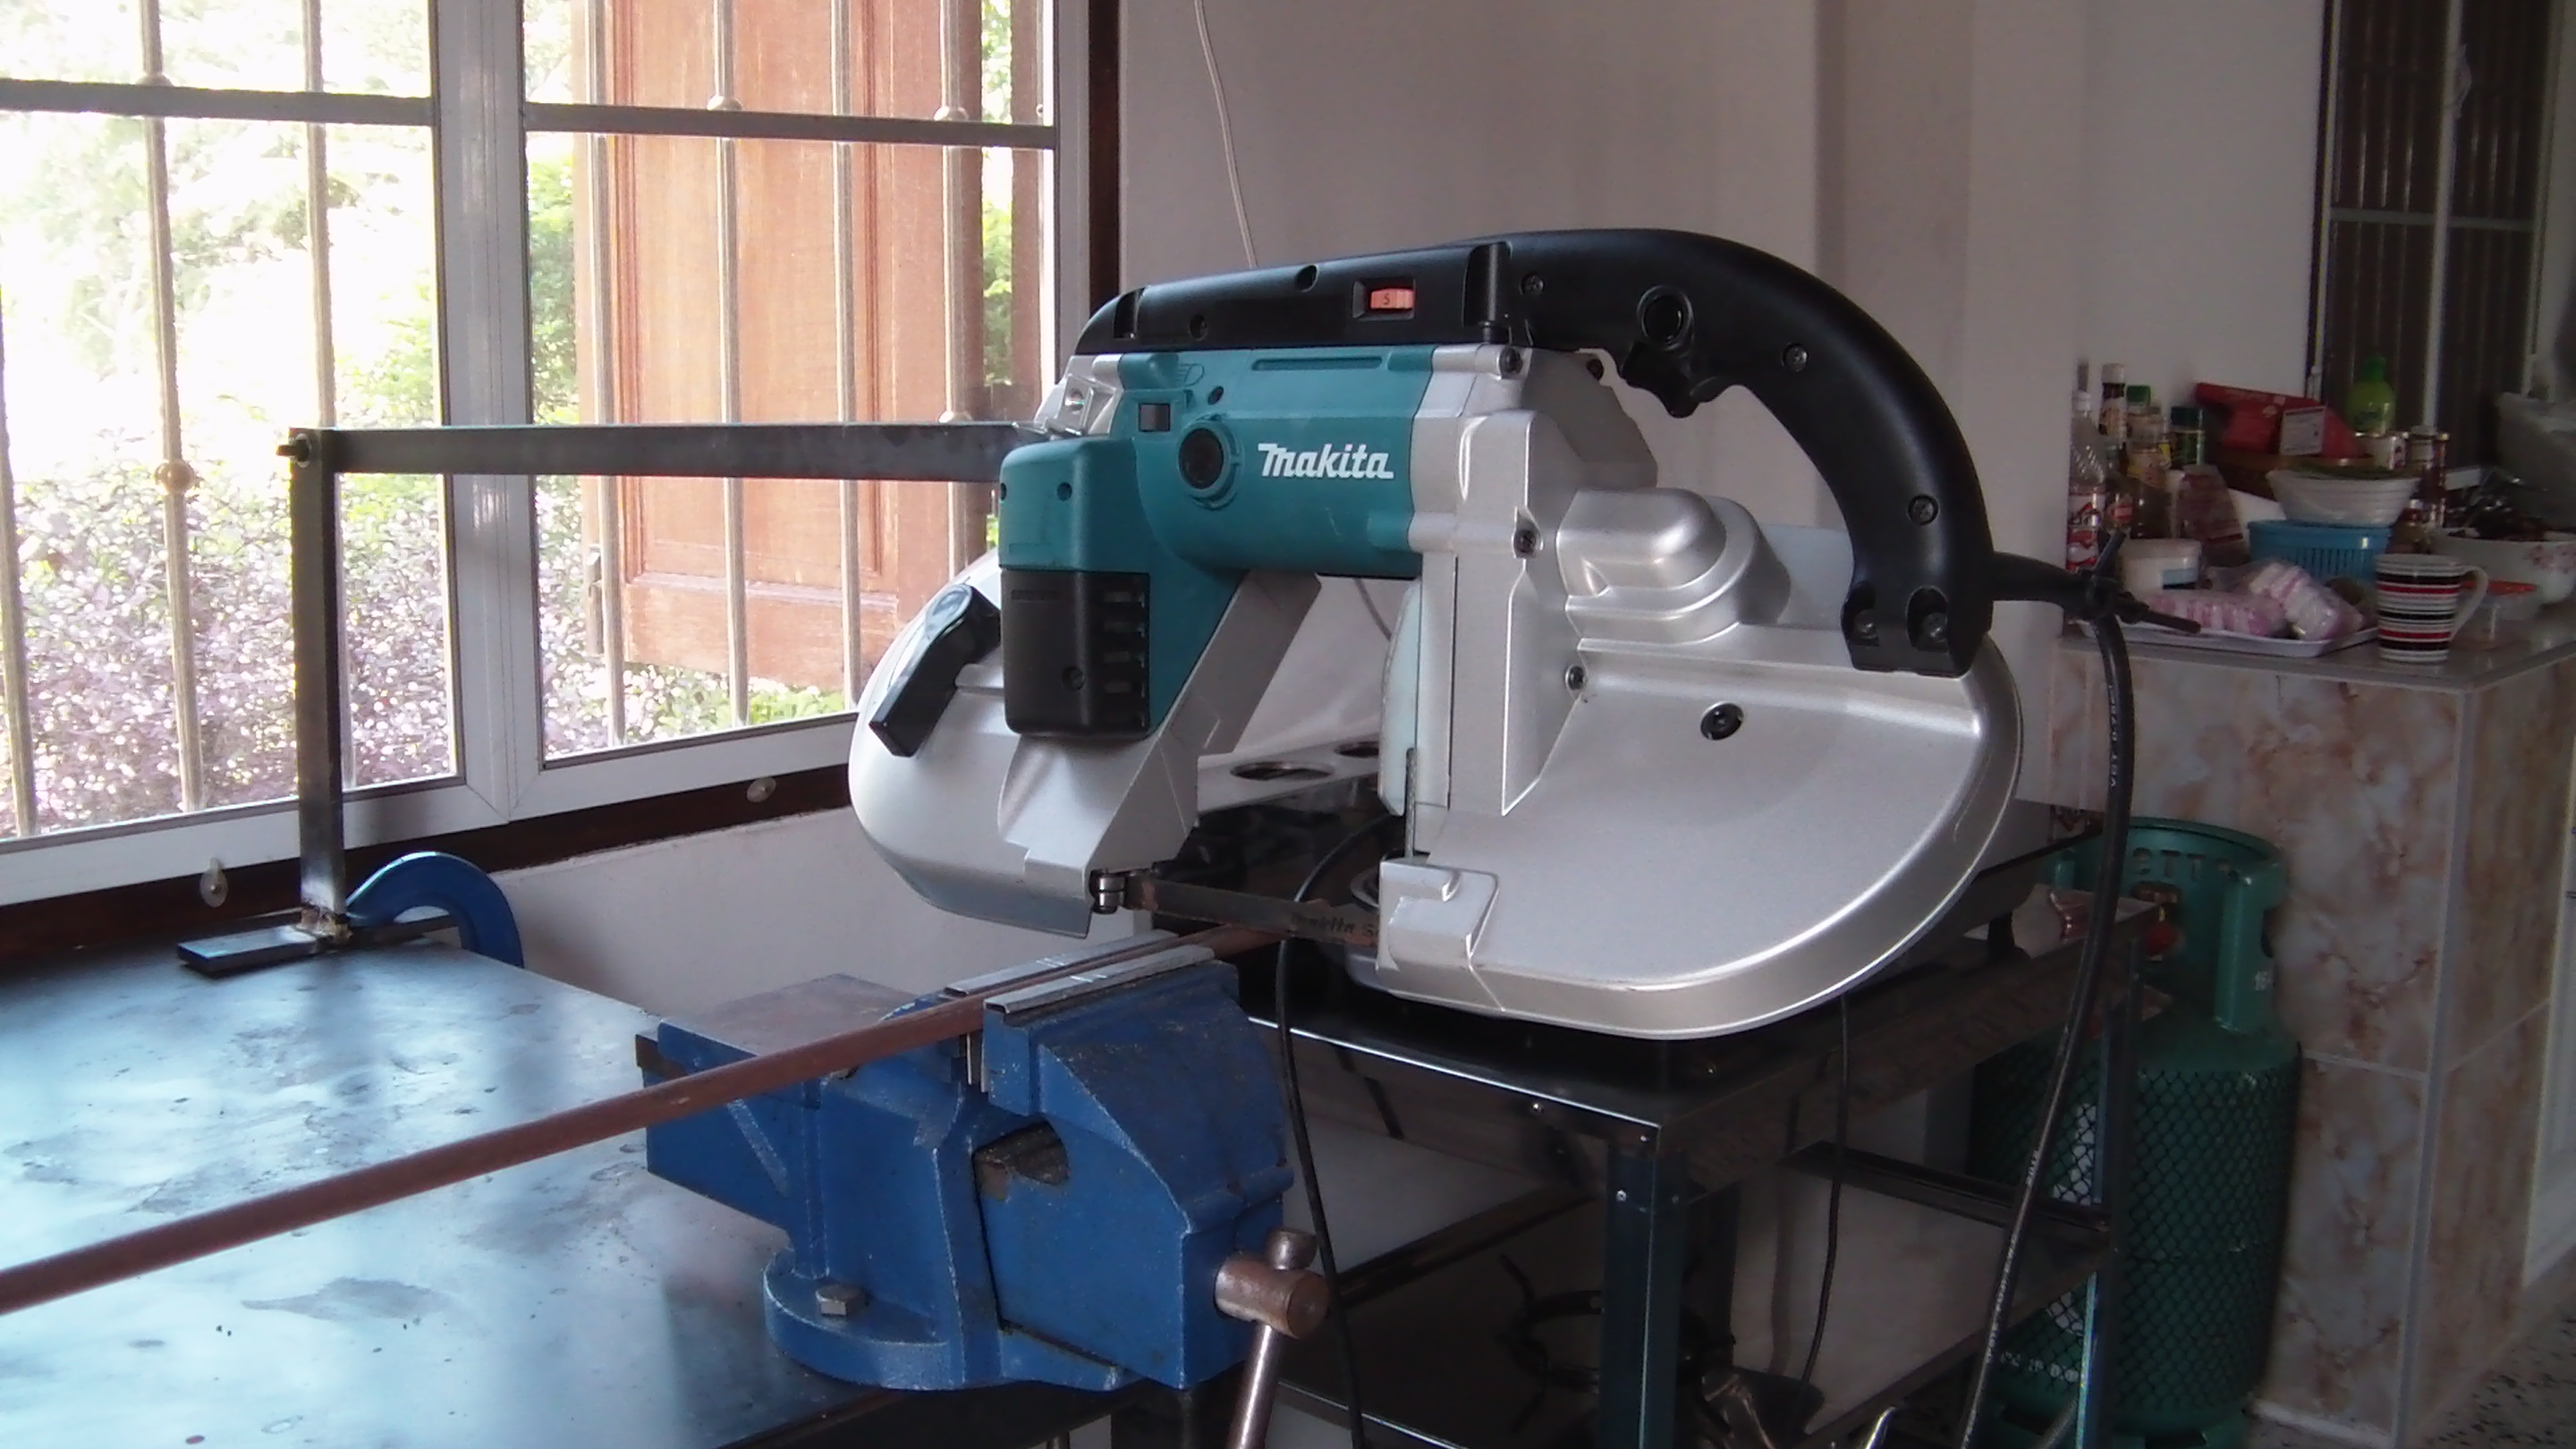 Index Of Wp Content Flagallery Makita 2107f Band Saw Cut